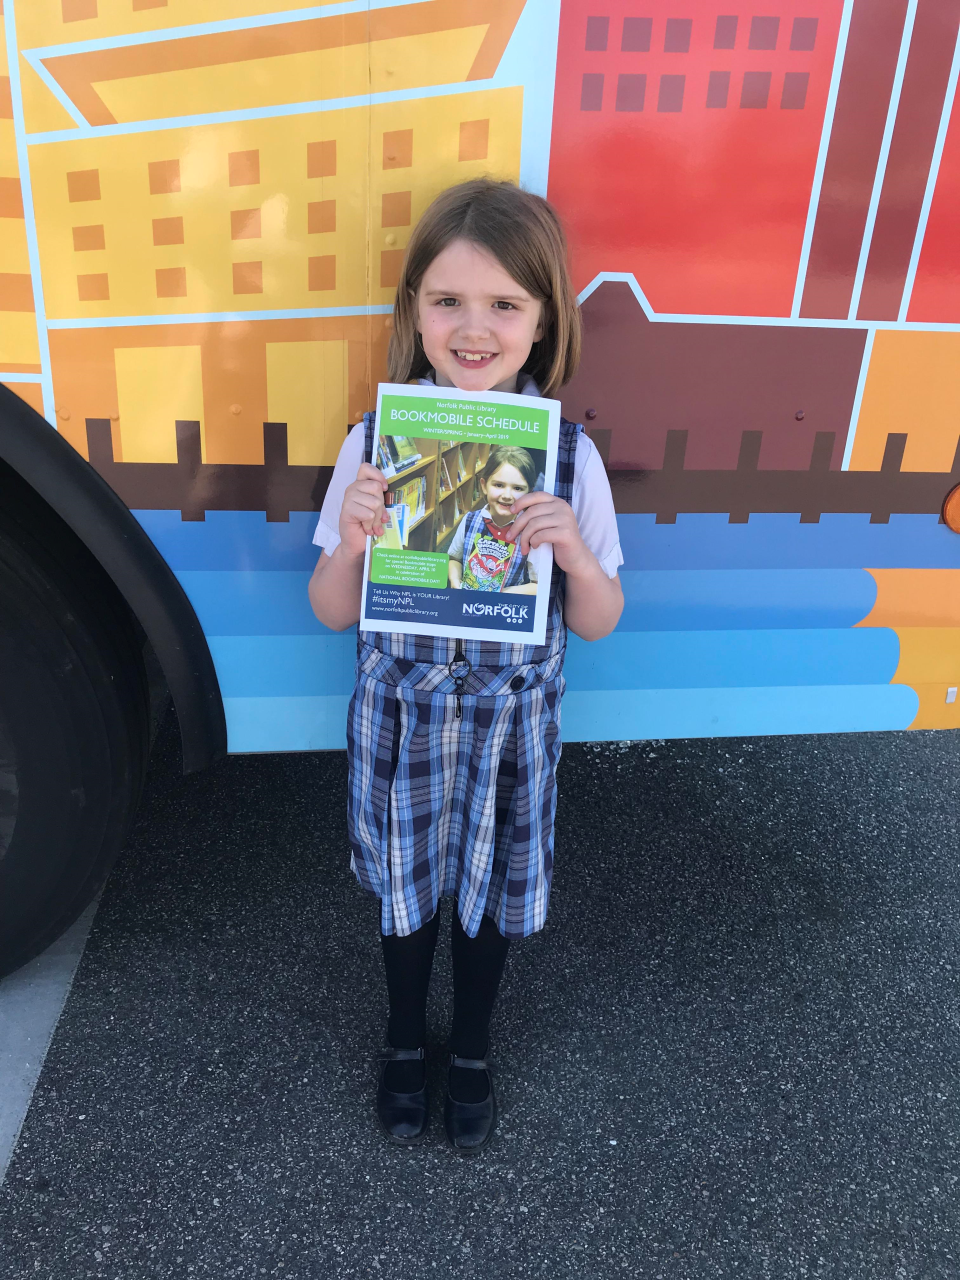 Norfolk's young readers love our books on wheels.